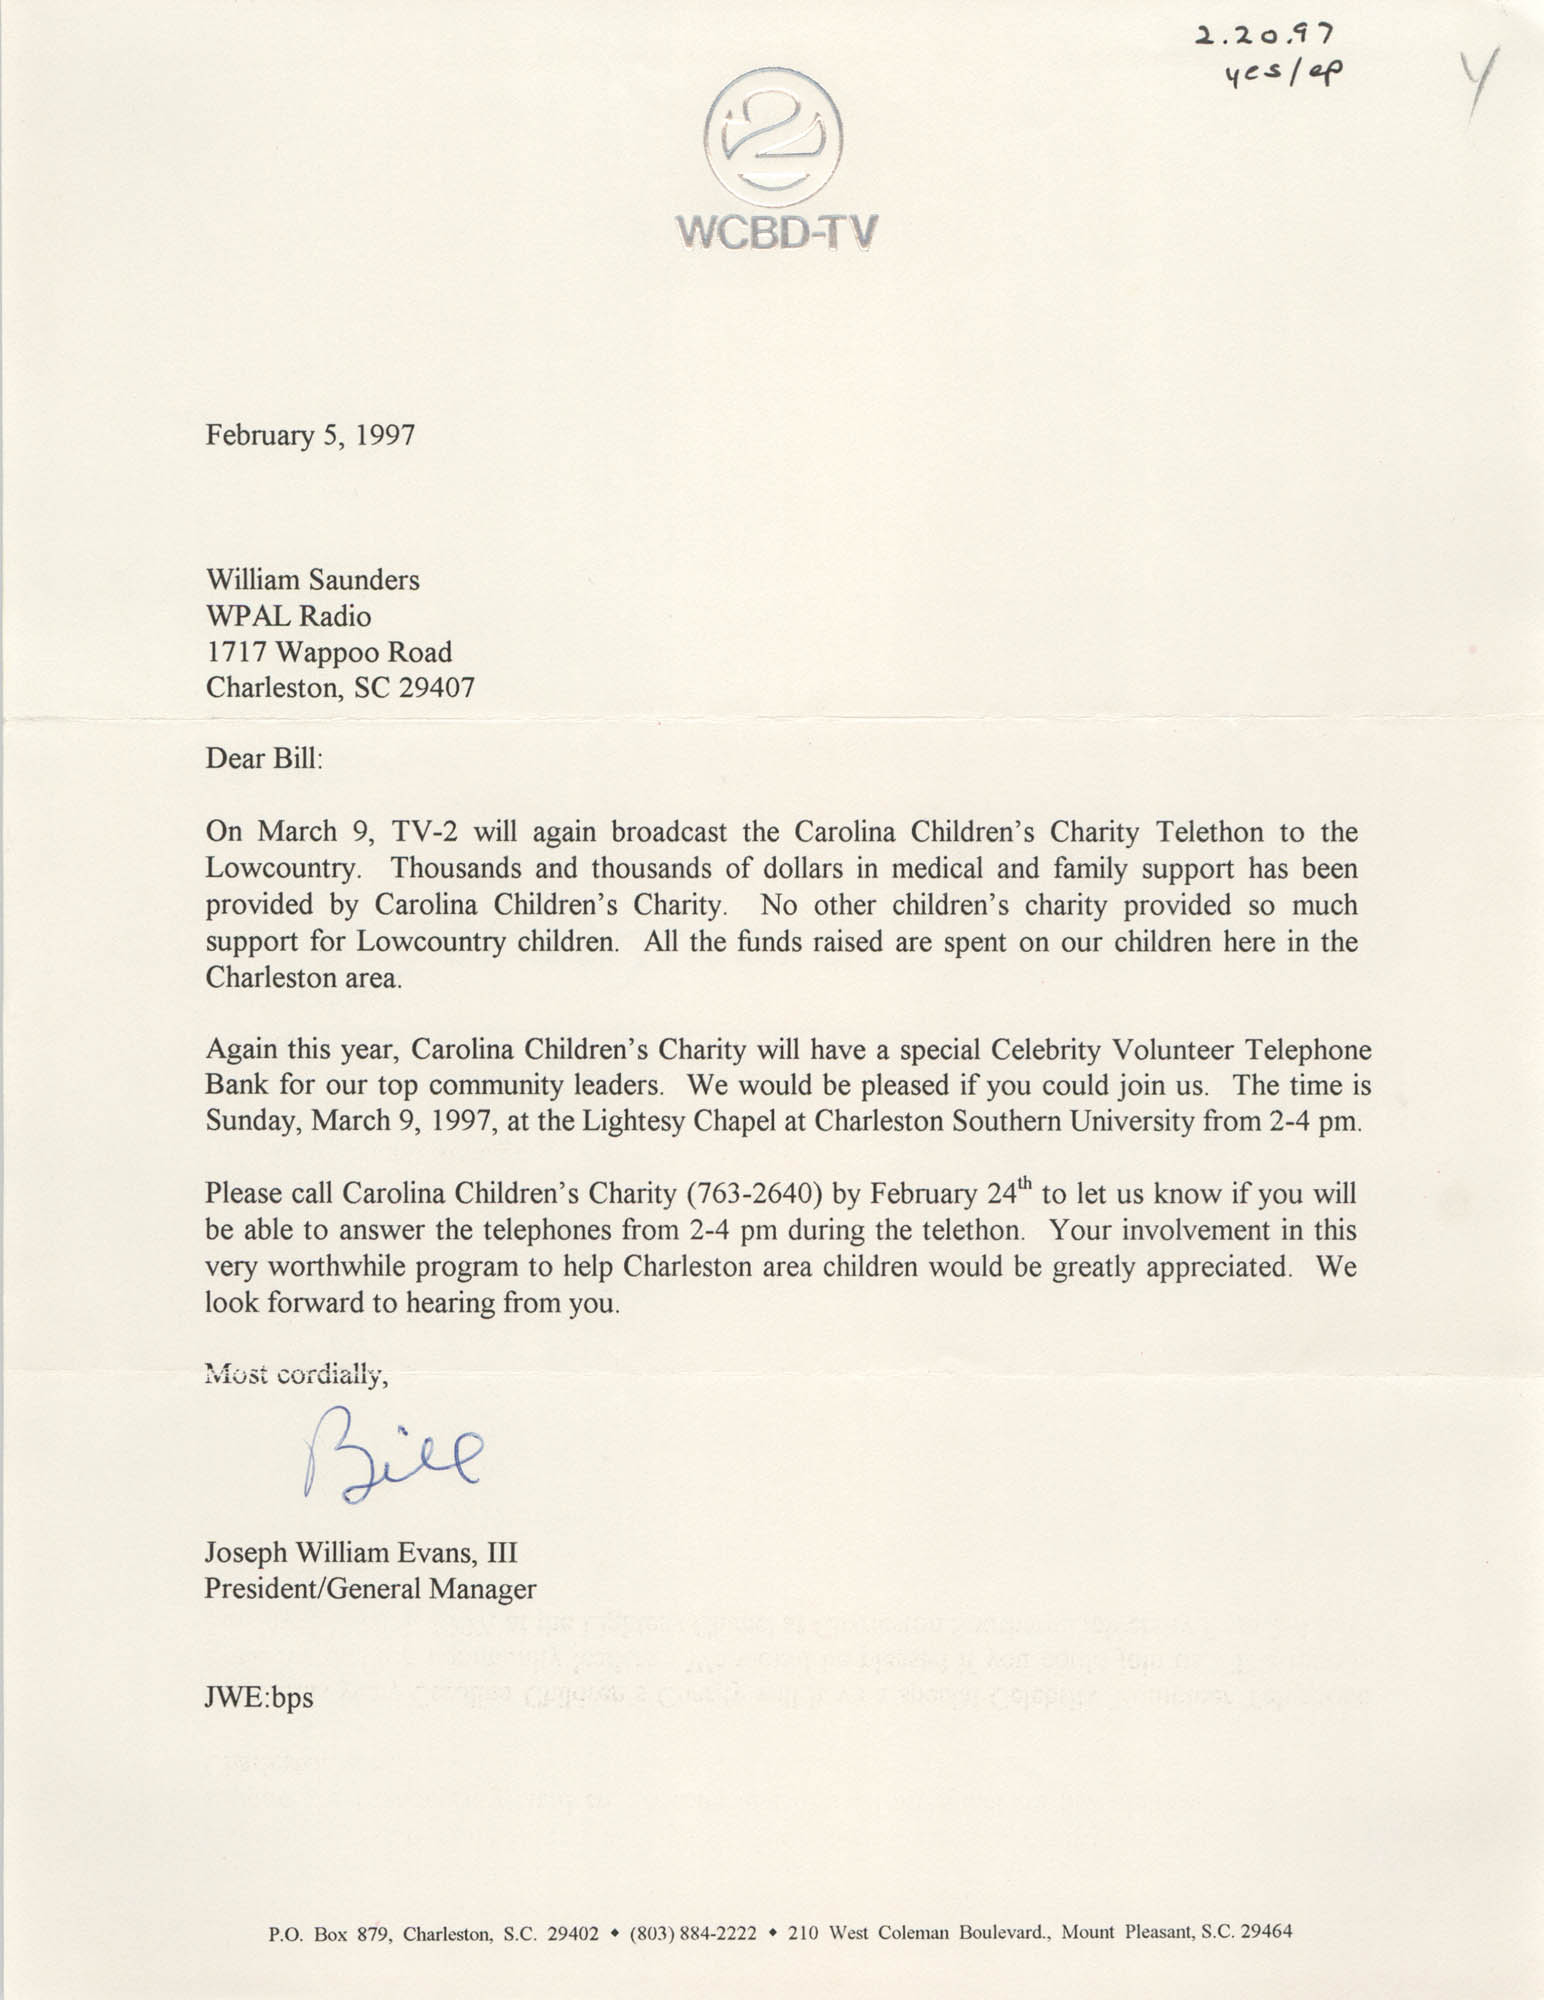 Letter from Joseph William Evans, III to William Saunders, February 5, 1997